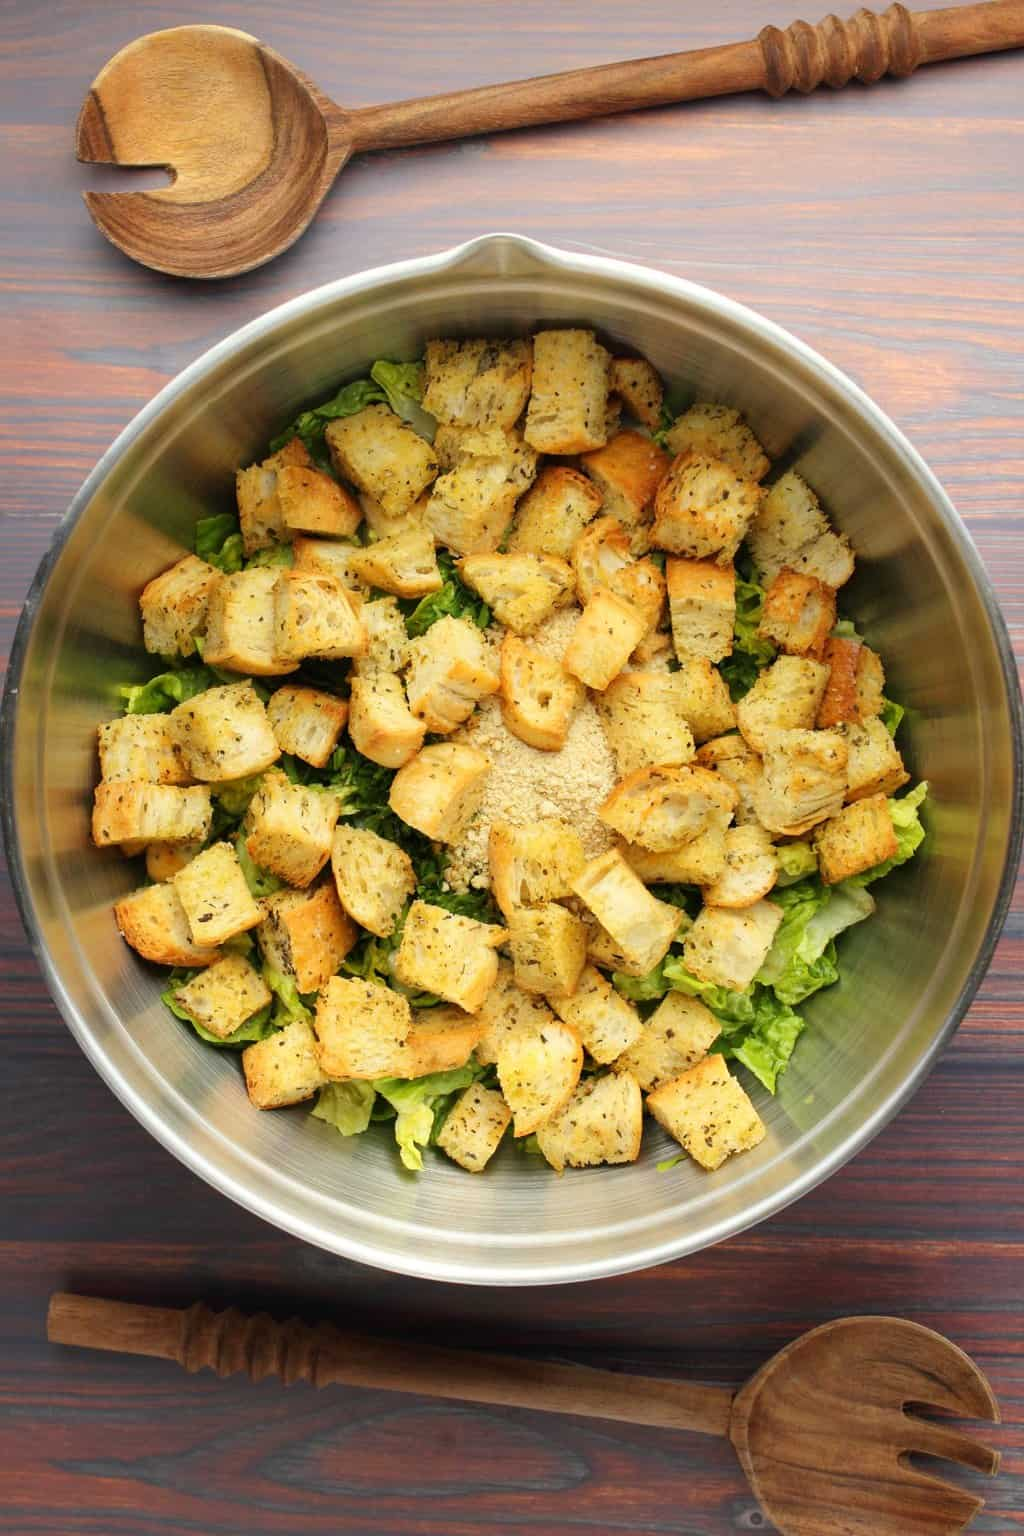 Romaine lettuce, parsley, vegan parmesan and croutons in a salad bowl ready to toss.